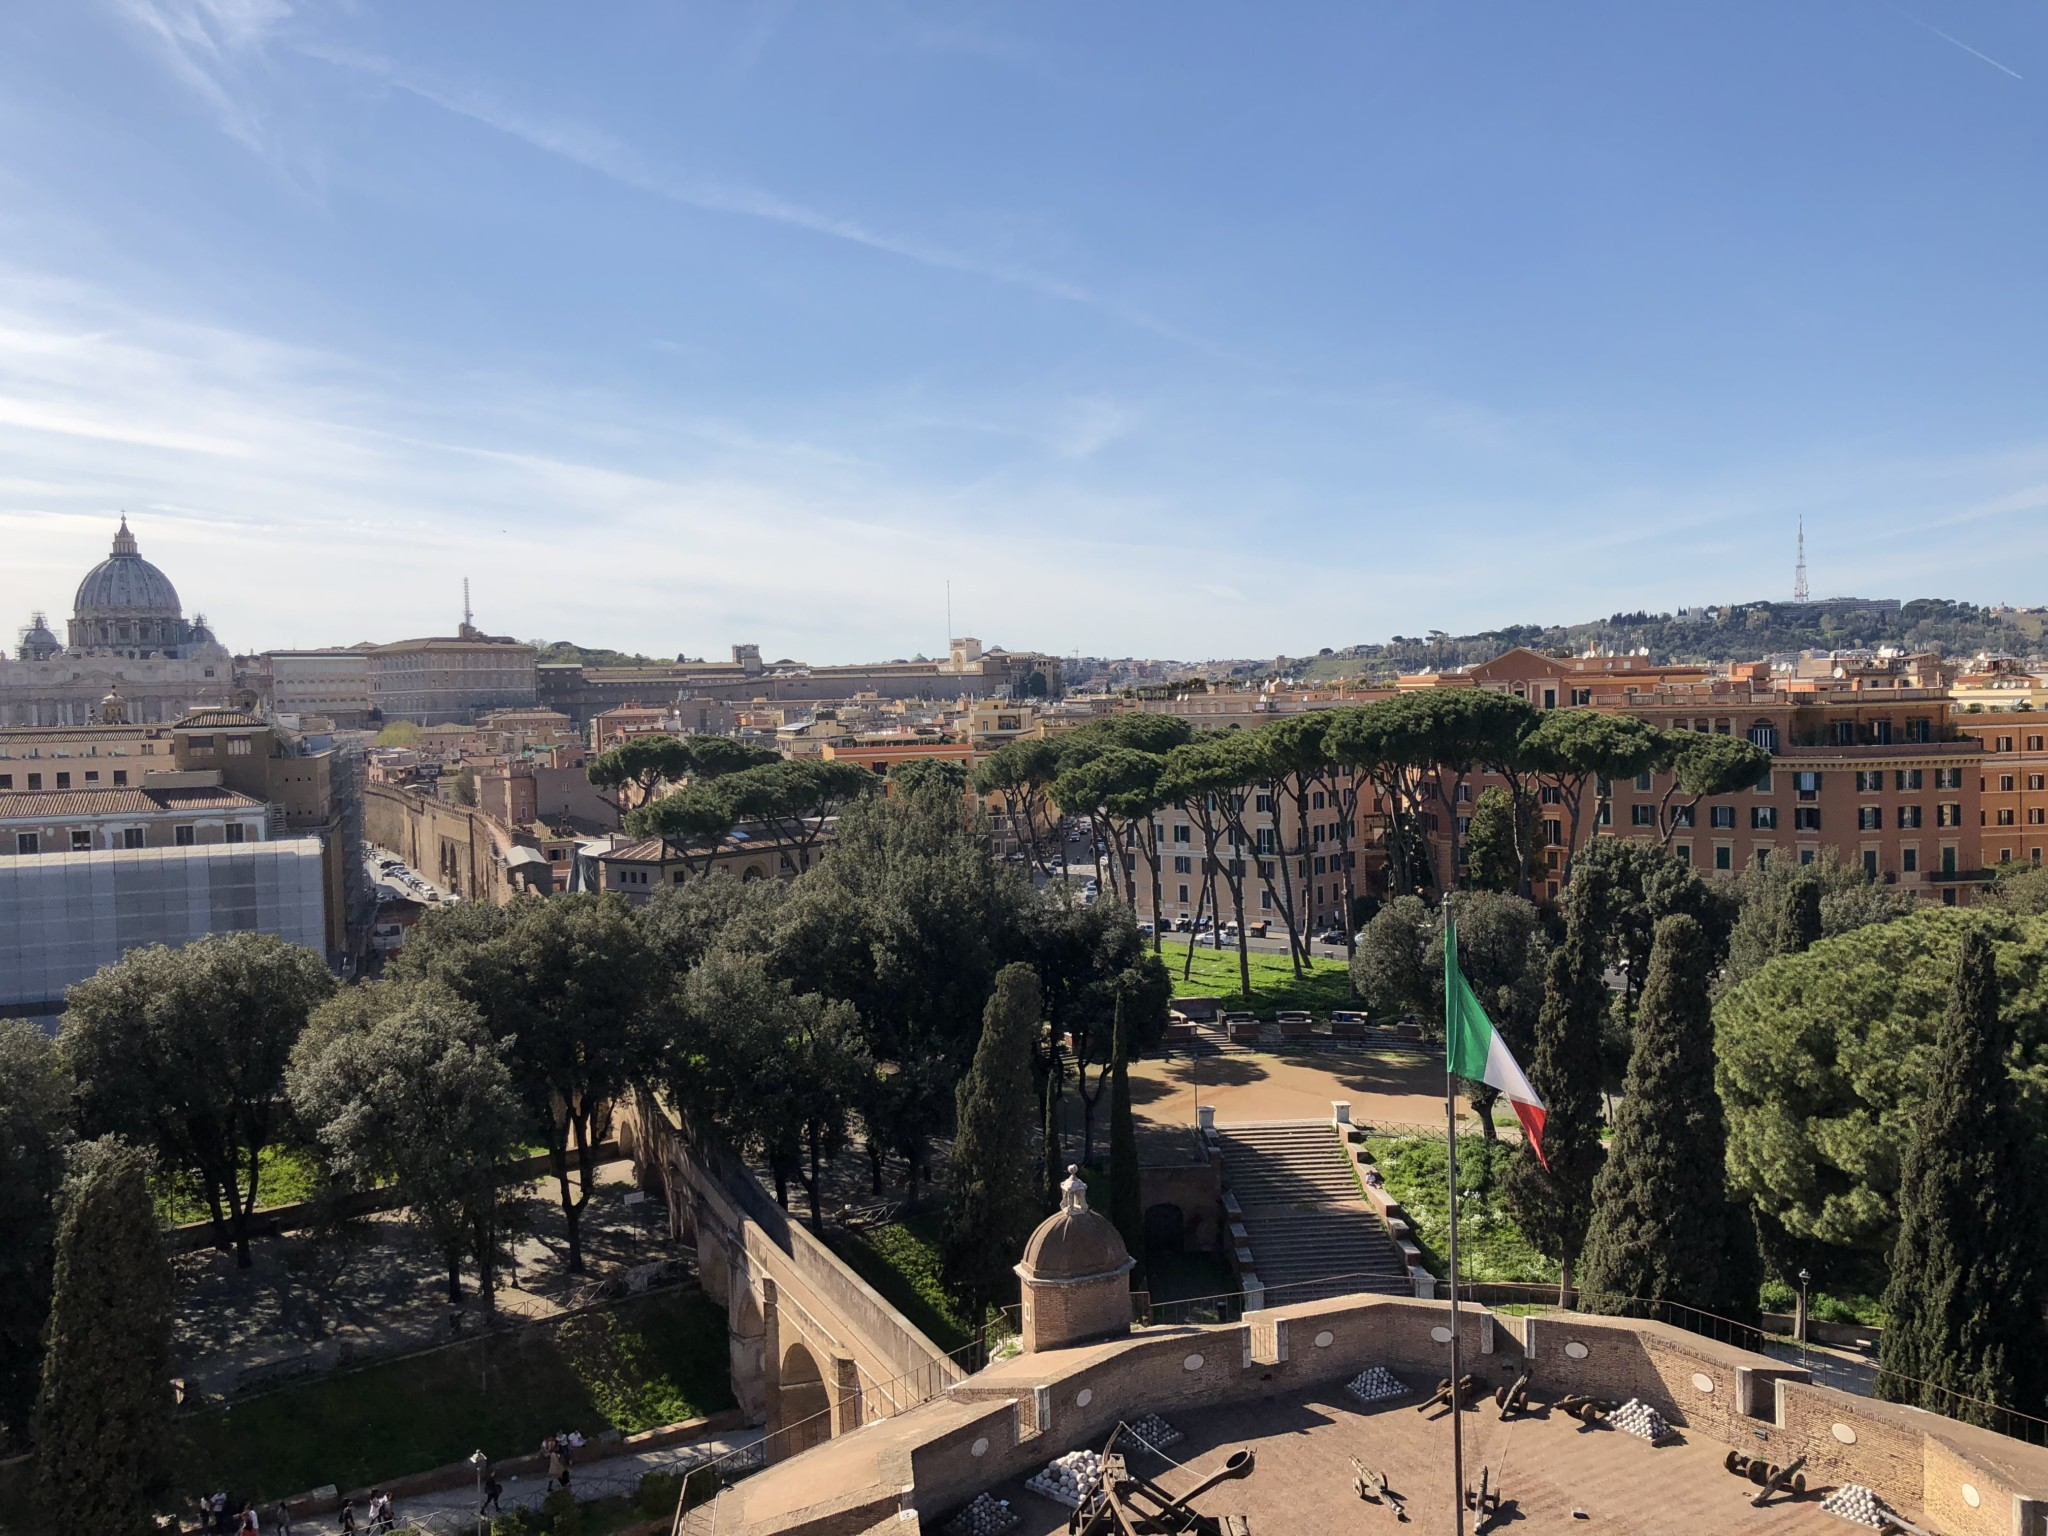 View of Vatican City from Castel Sant'Angelo in Rome, Italy.